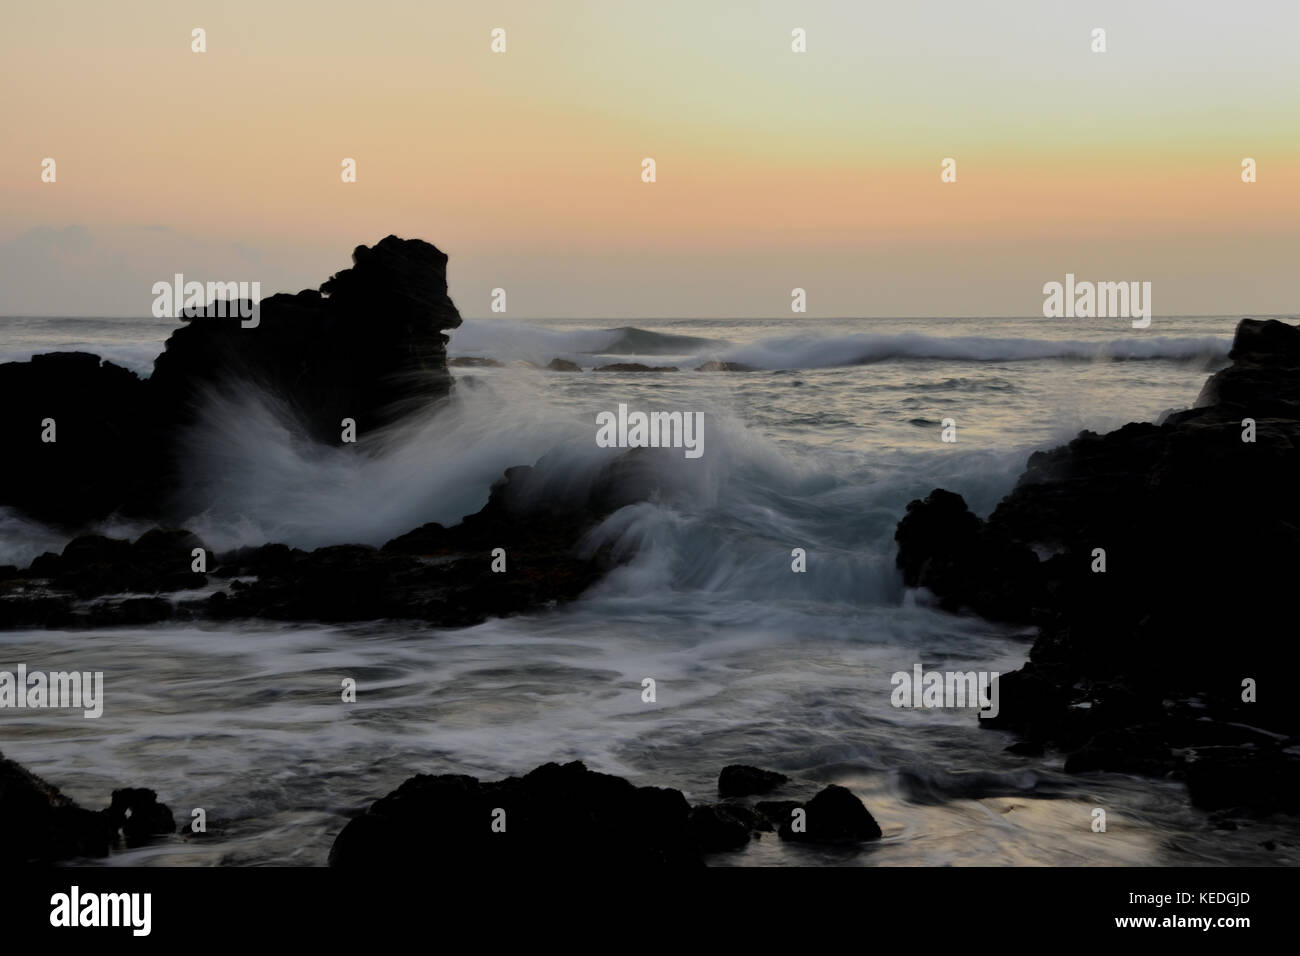 Sunrise photoshoot at Erma's Beach on the island of Oahu, HawaiiStock Photo